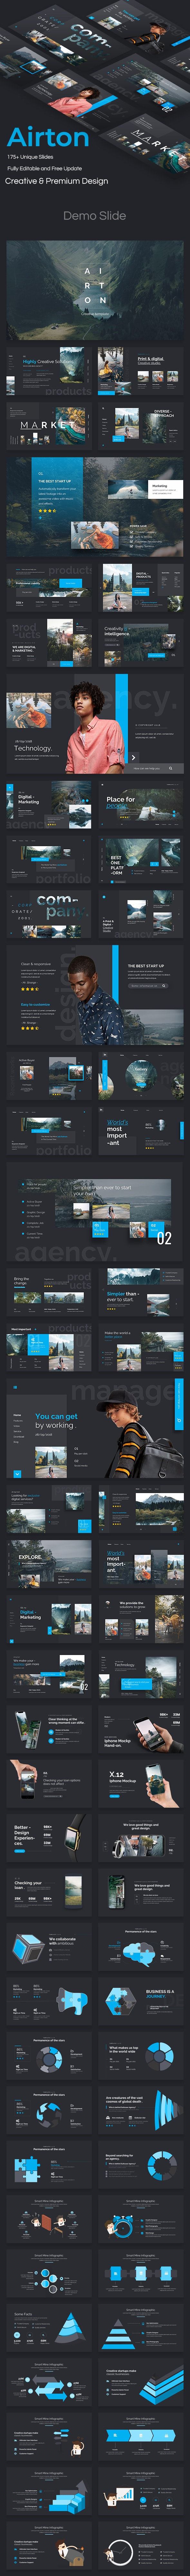 Airton Premium Powerpoint Template - Creative PowerPoint Templates